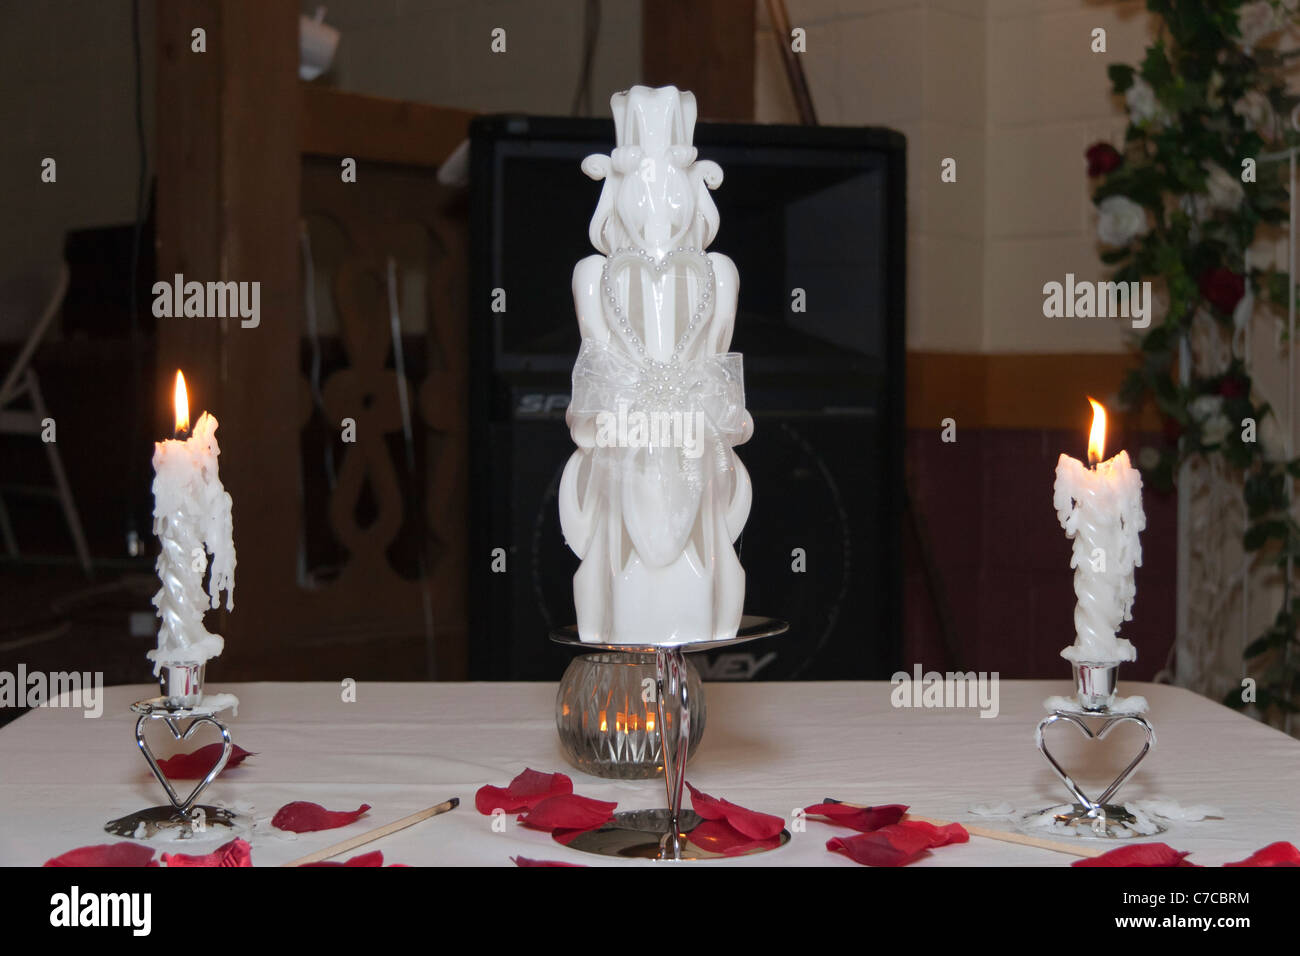 Wedding Unity Candles Lit Up On A Table Decorated With White Cloth And Red  Roses Petals